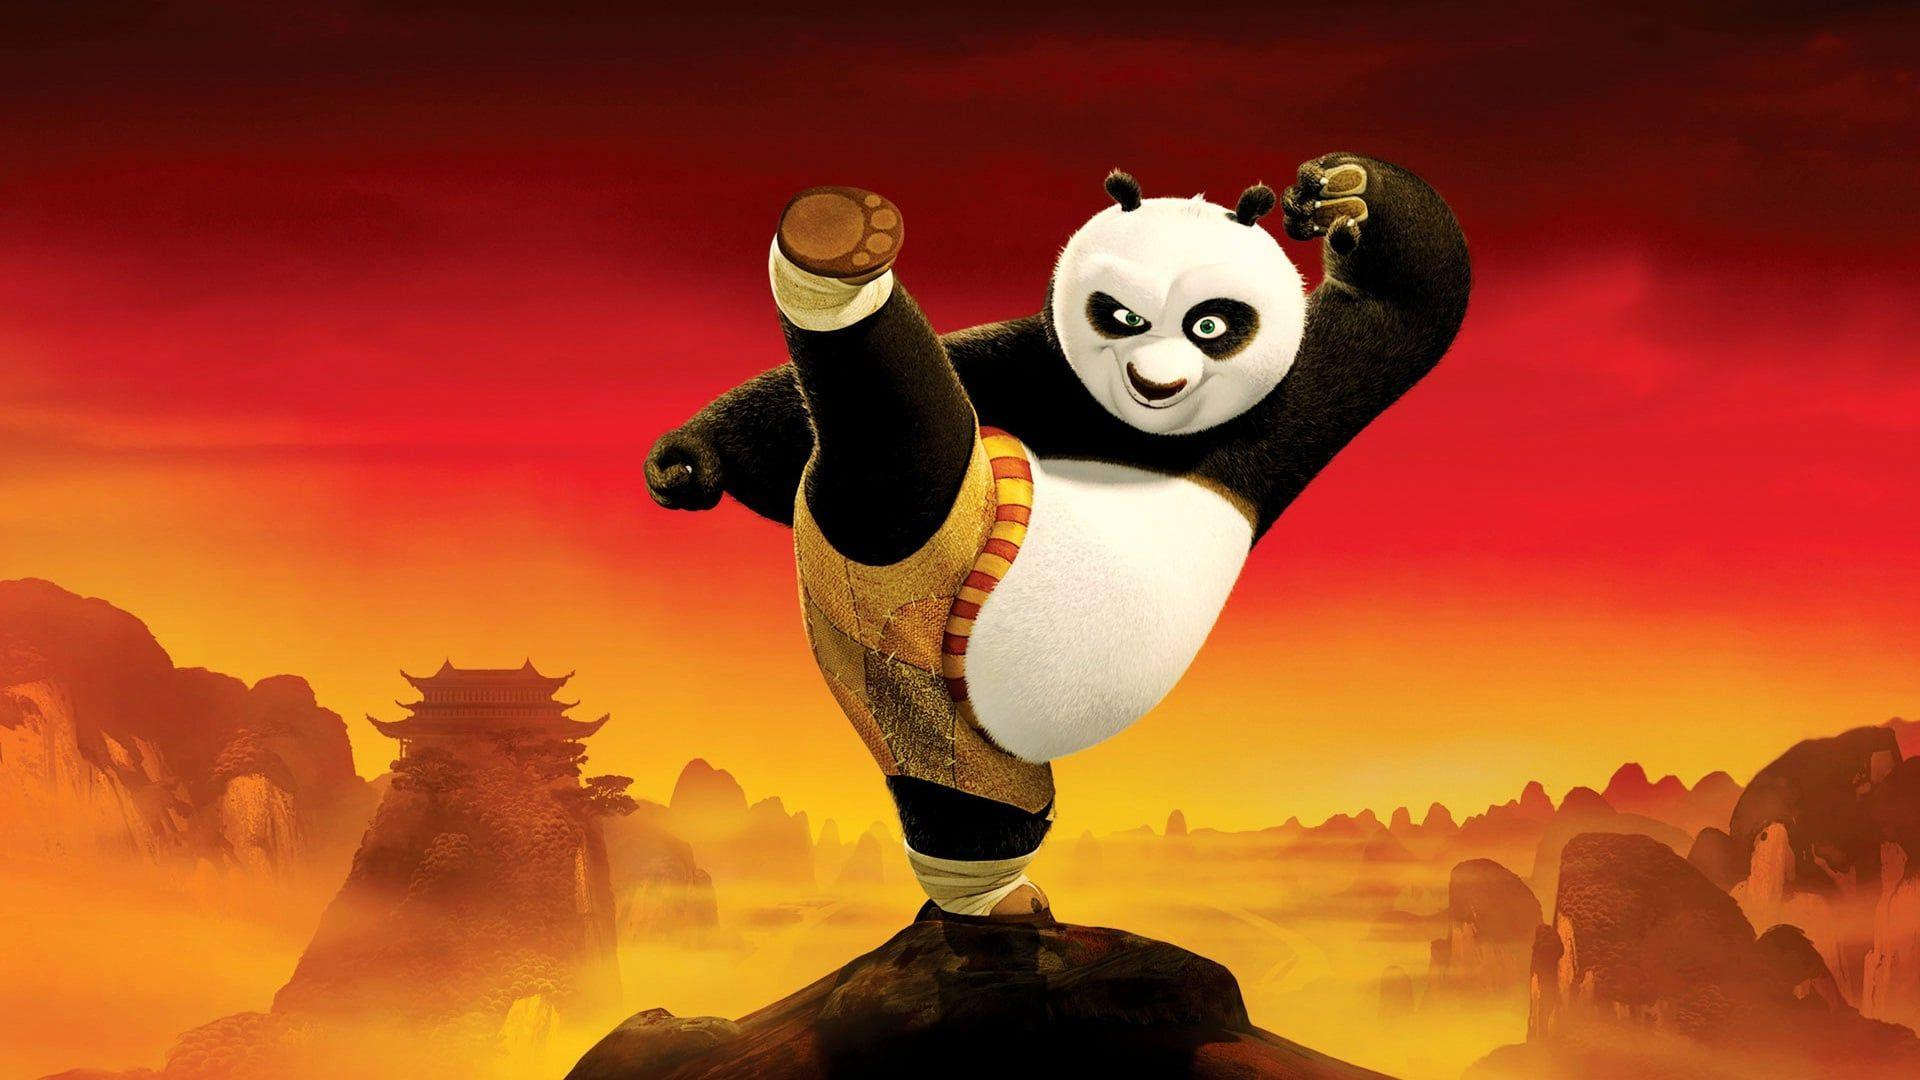 kung fu panda wallpapers - wallpaper cave